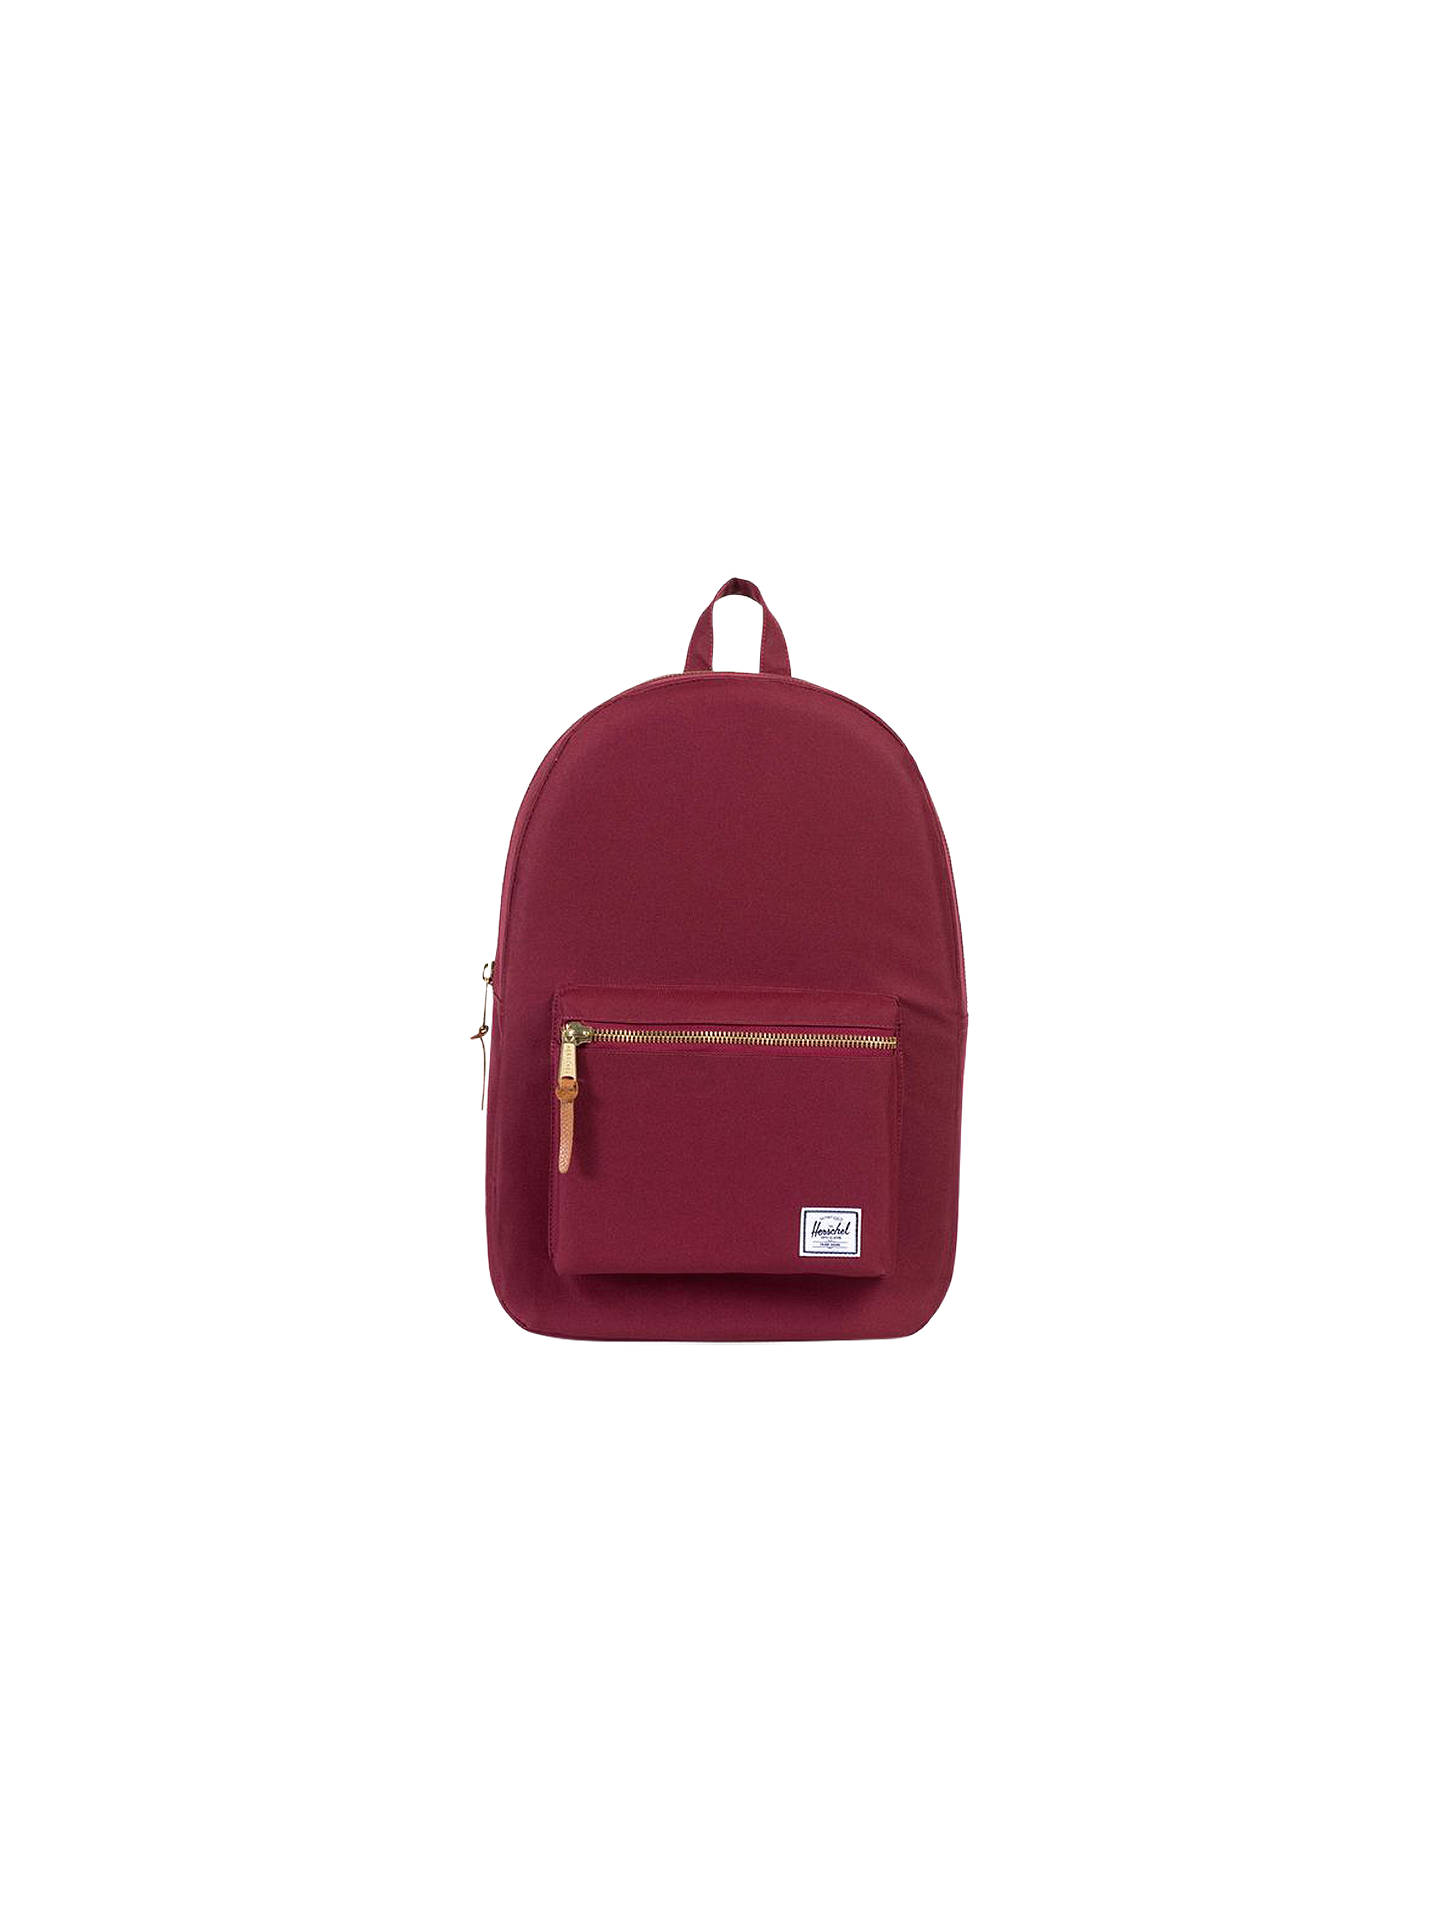 8f67df1d7c1 Herschel Supply Co. Settlement Backpack at John Lewis   Partners